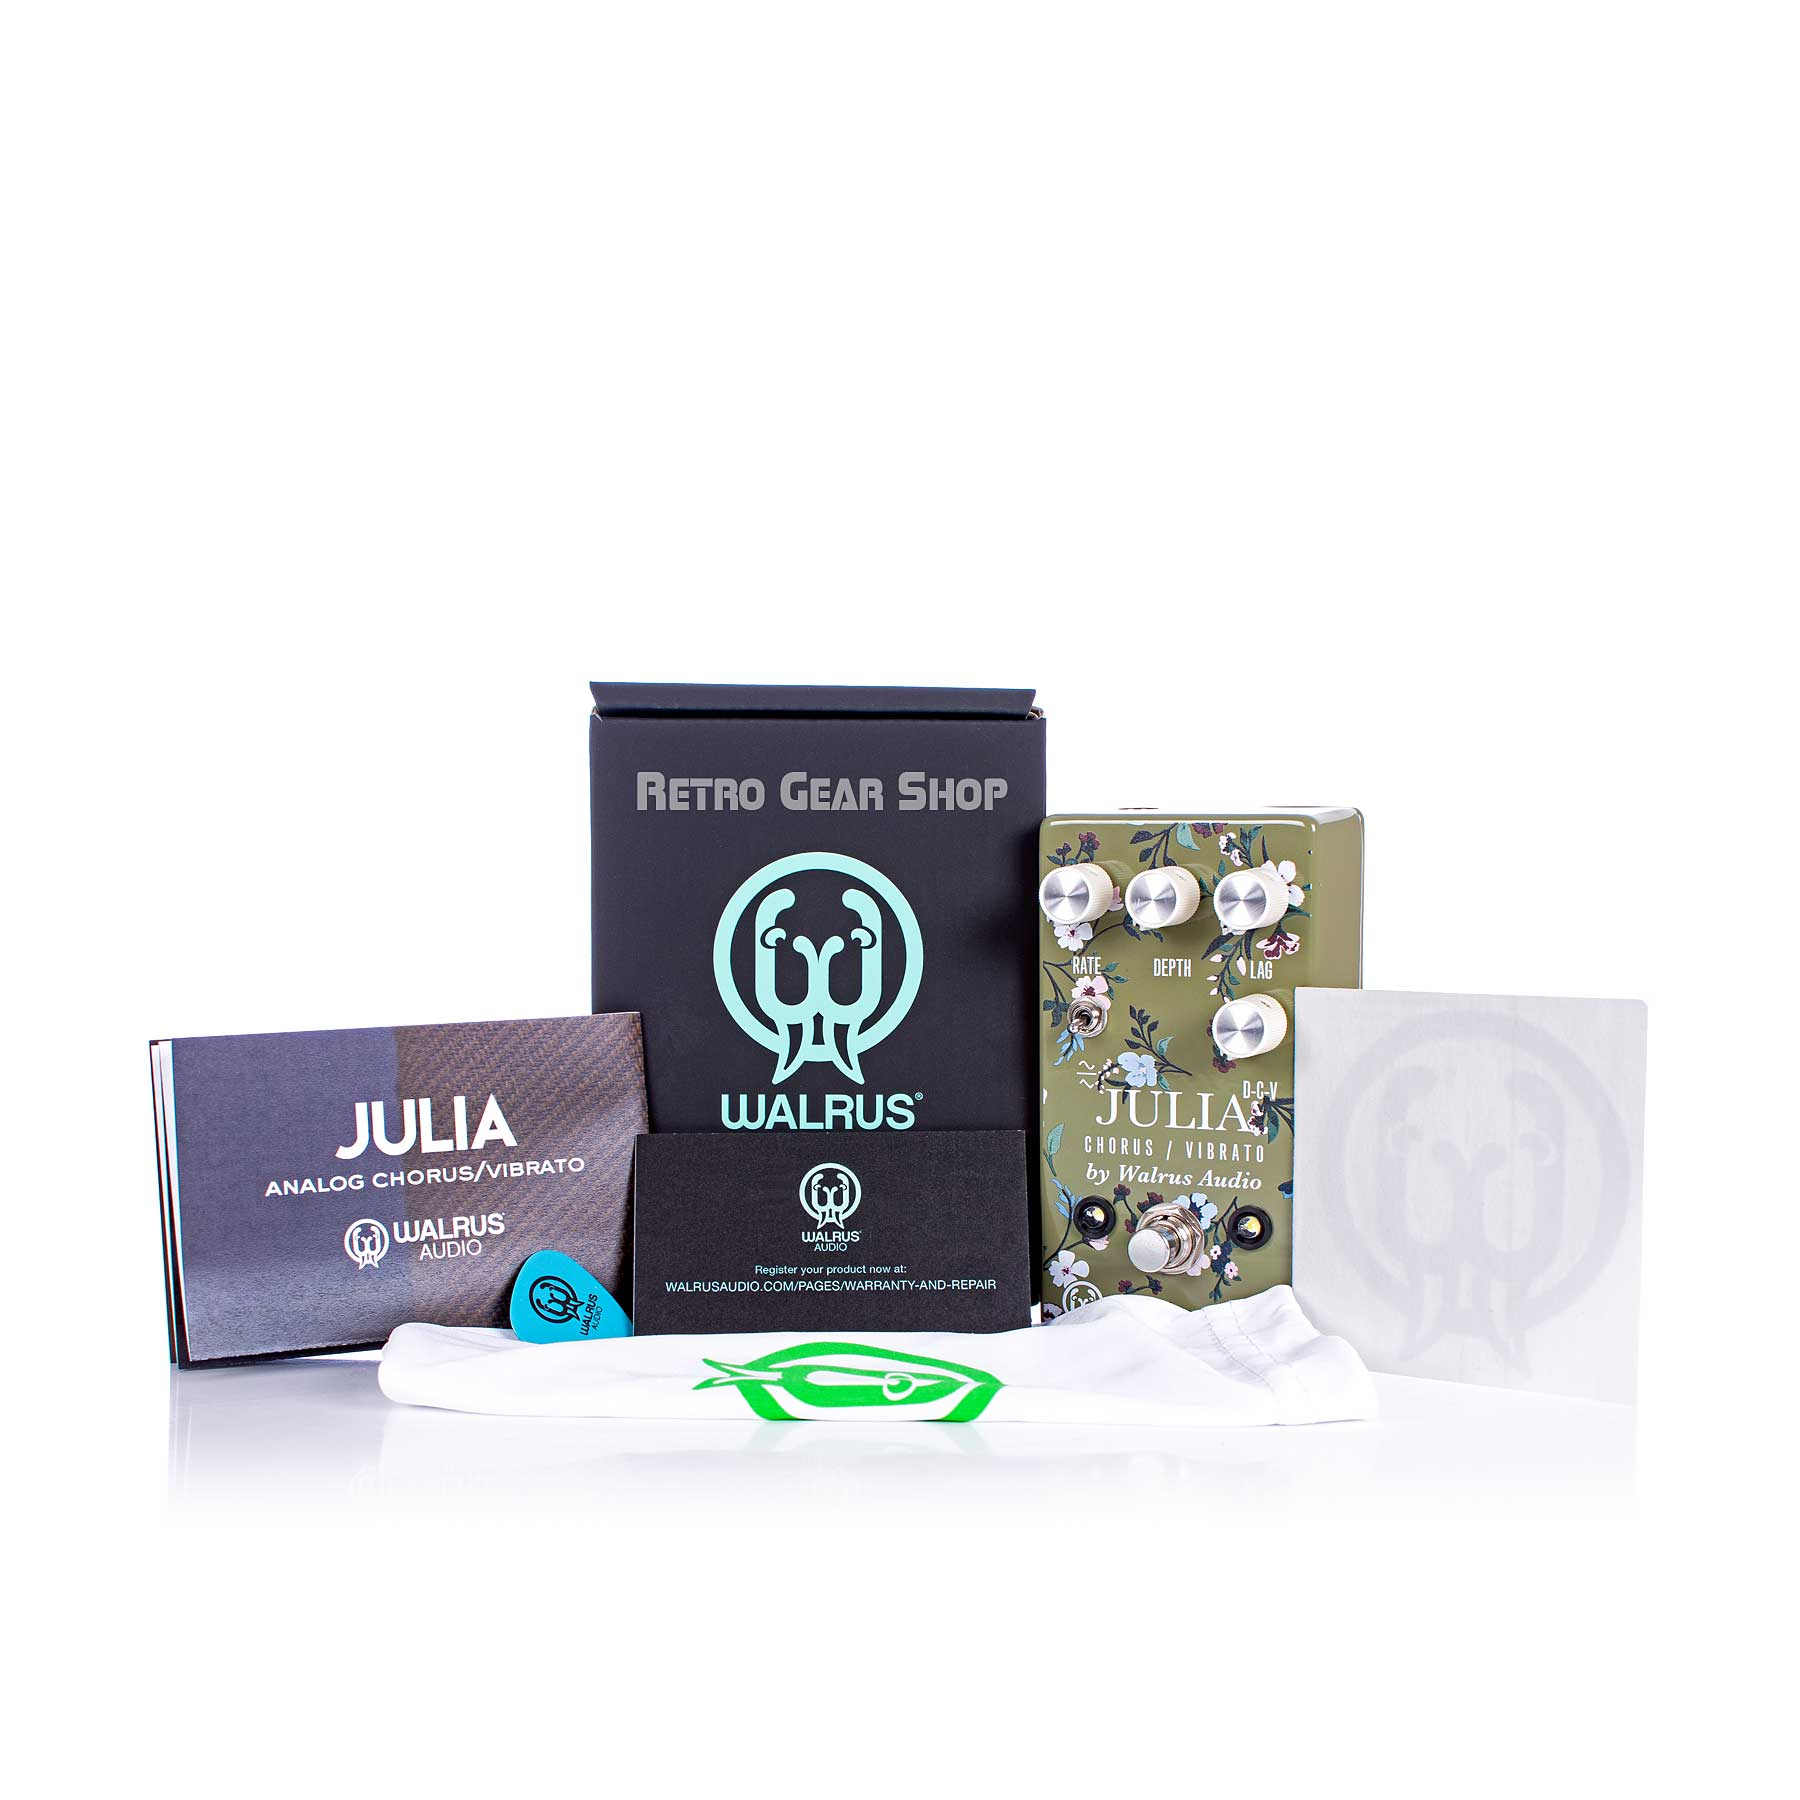 Walrus Audio Julia Analog Chorus/Vibrato Floral Series Box Manual Extras